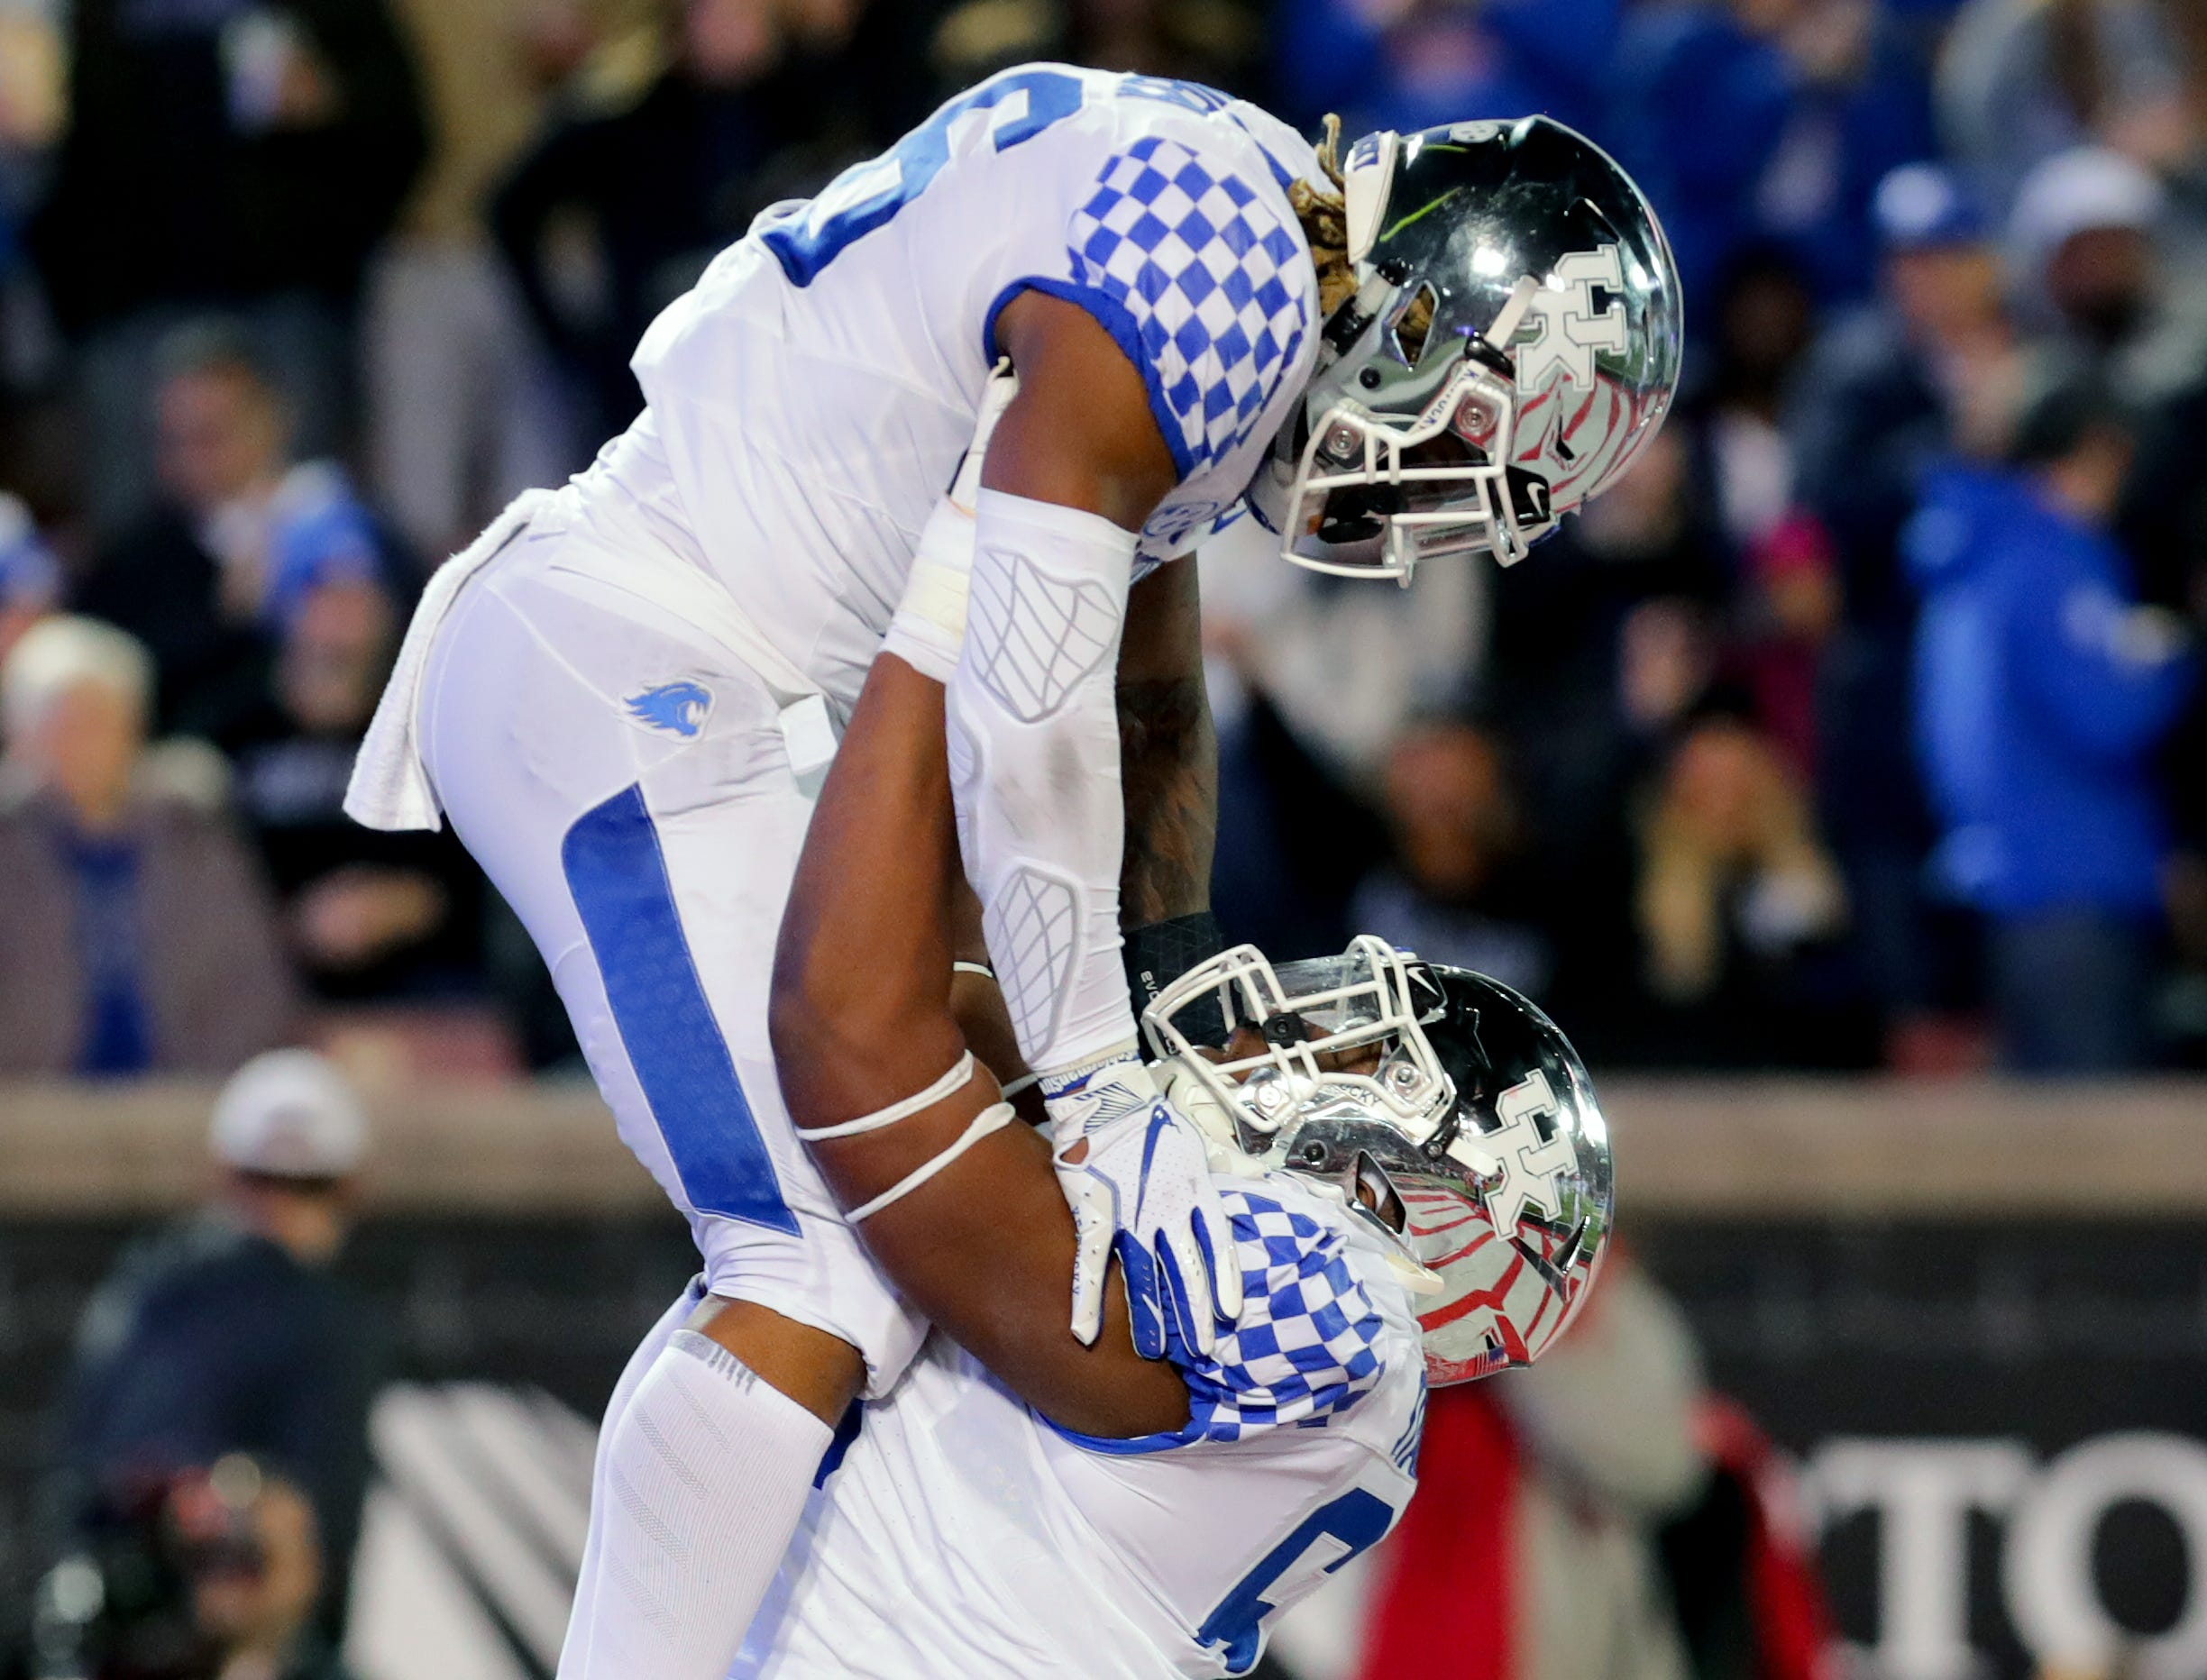 Kentucky's Sam Turner lifts Benny Snell Jr. up in the air after Snell scored a touchdown. 